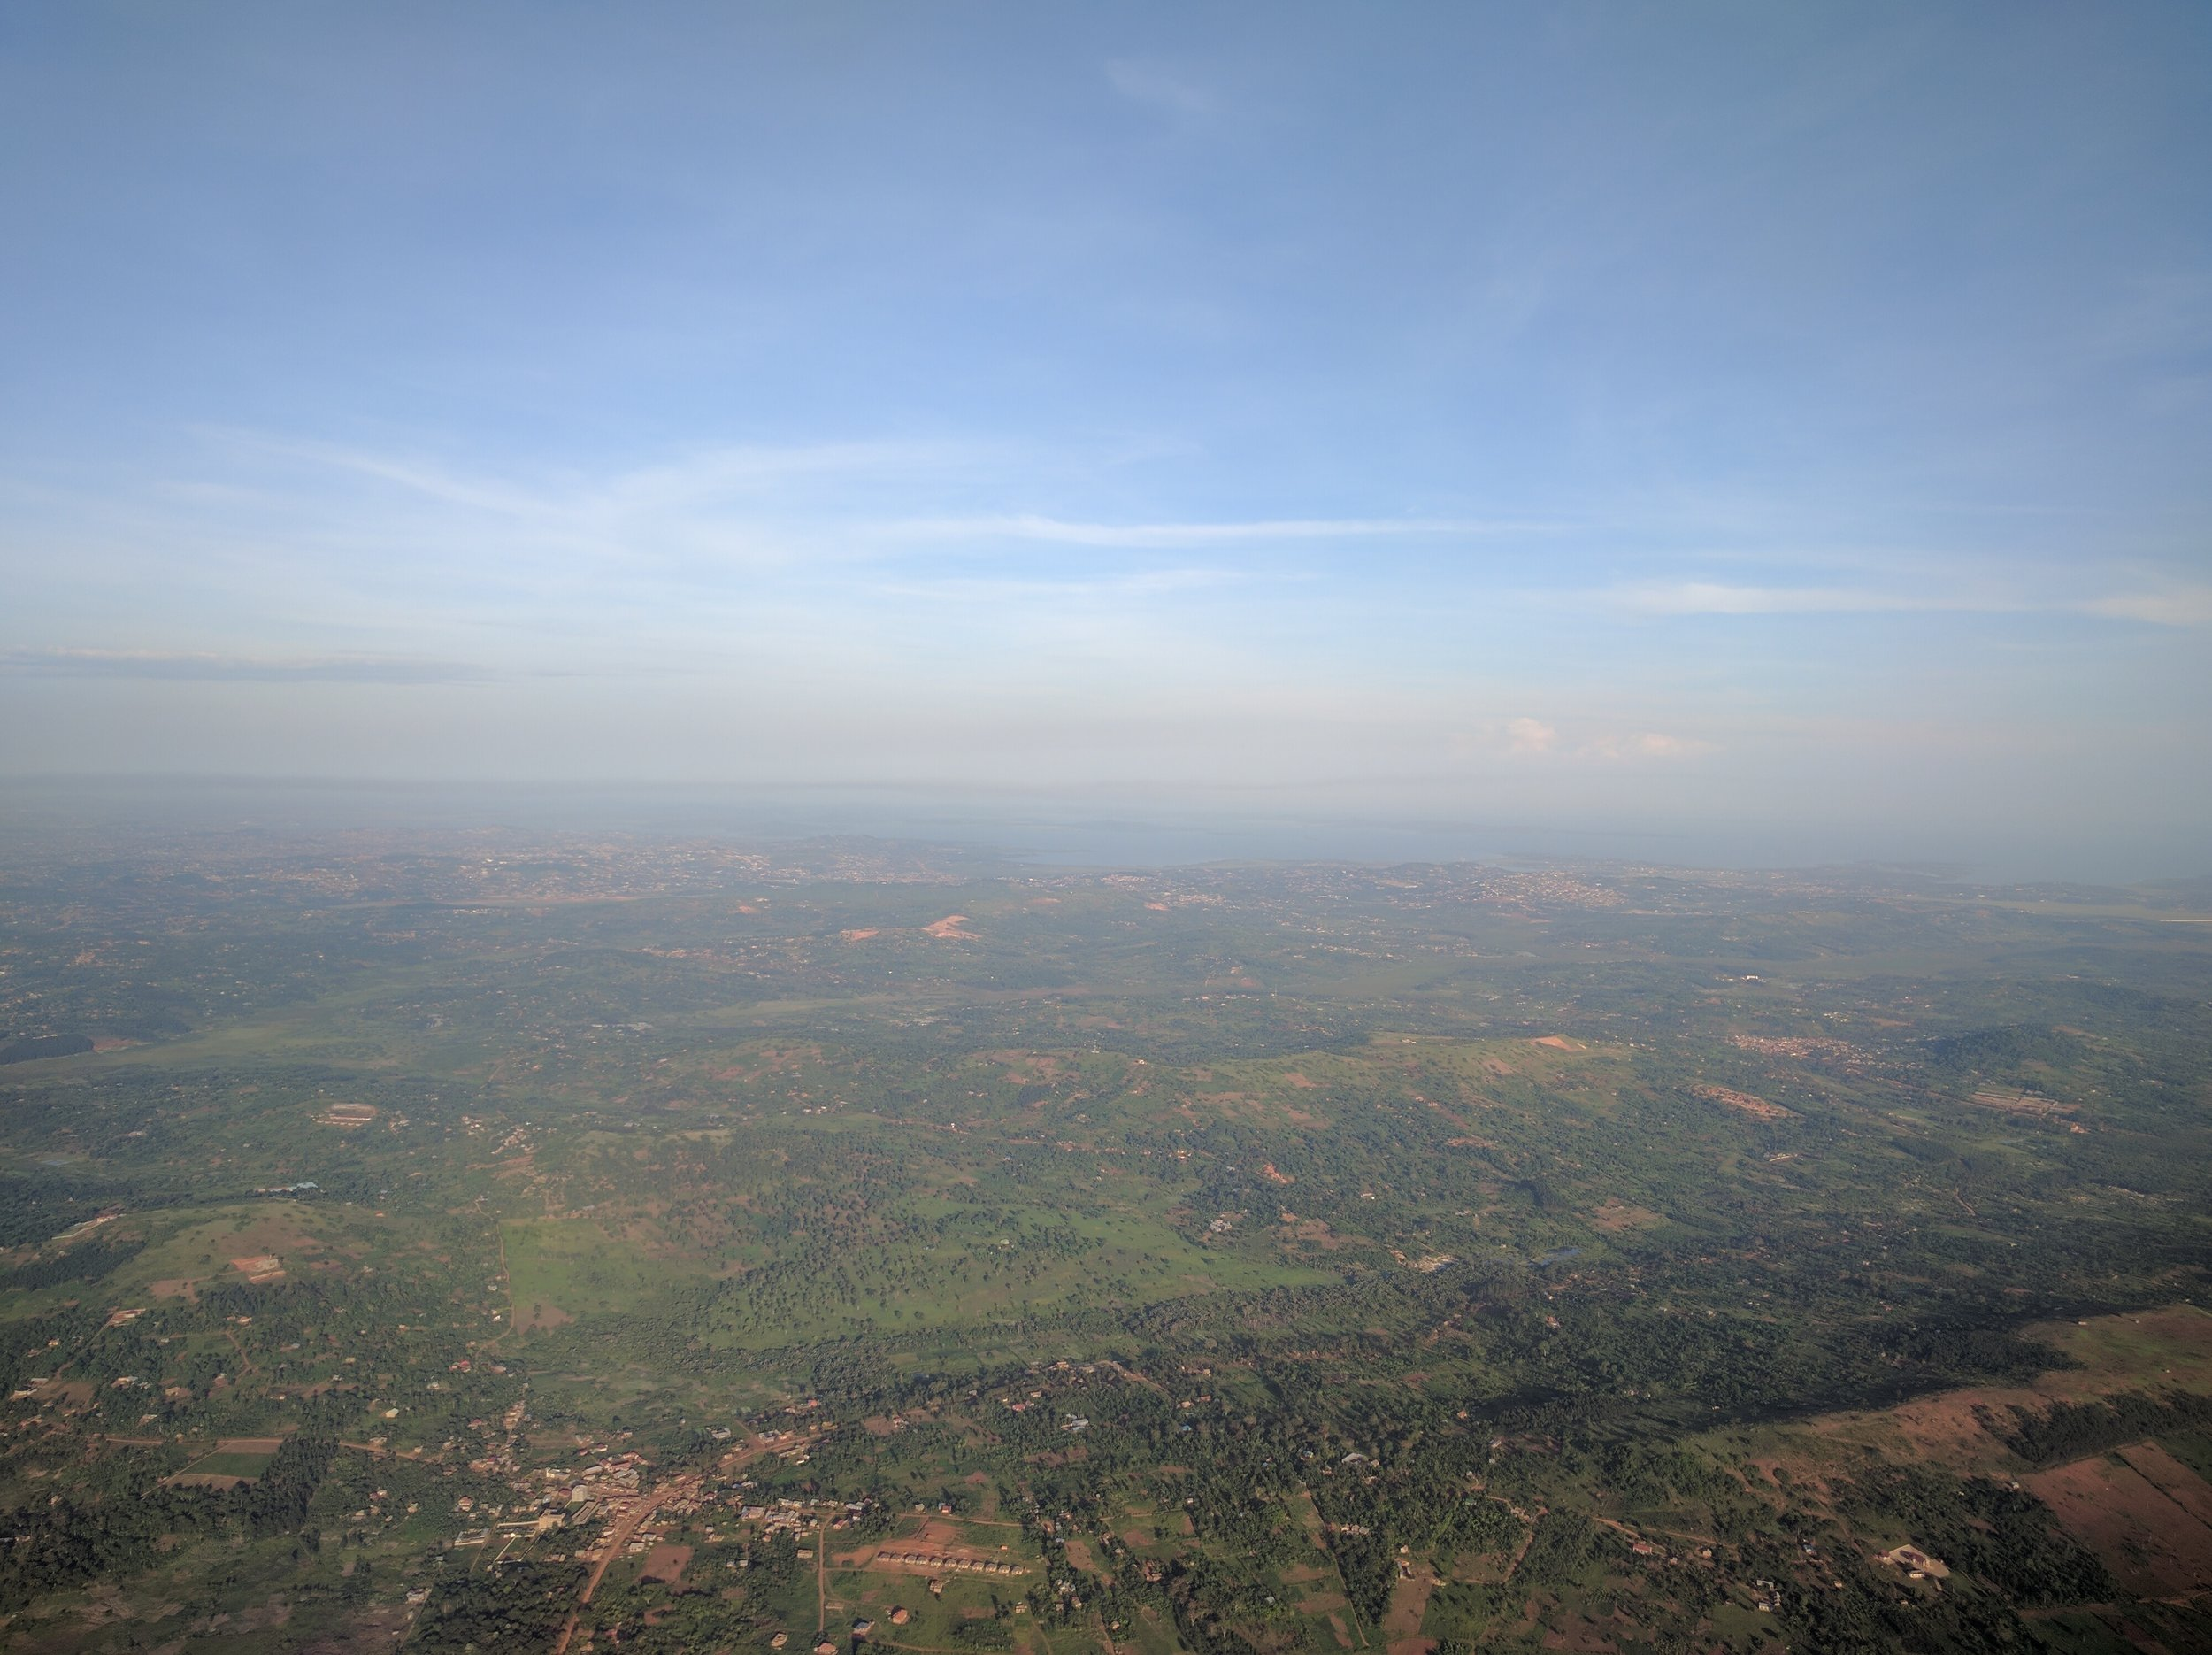 Another look at Uganda from the air